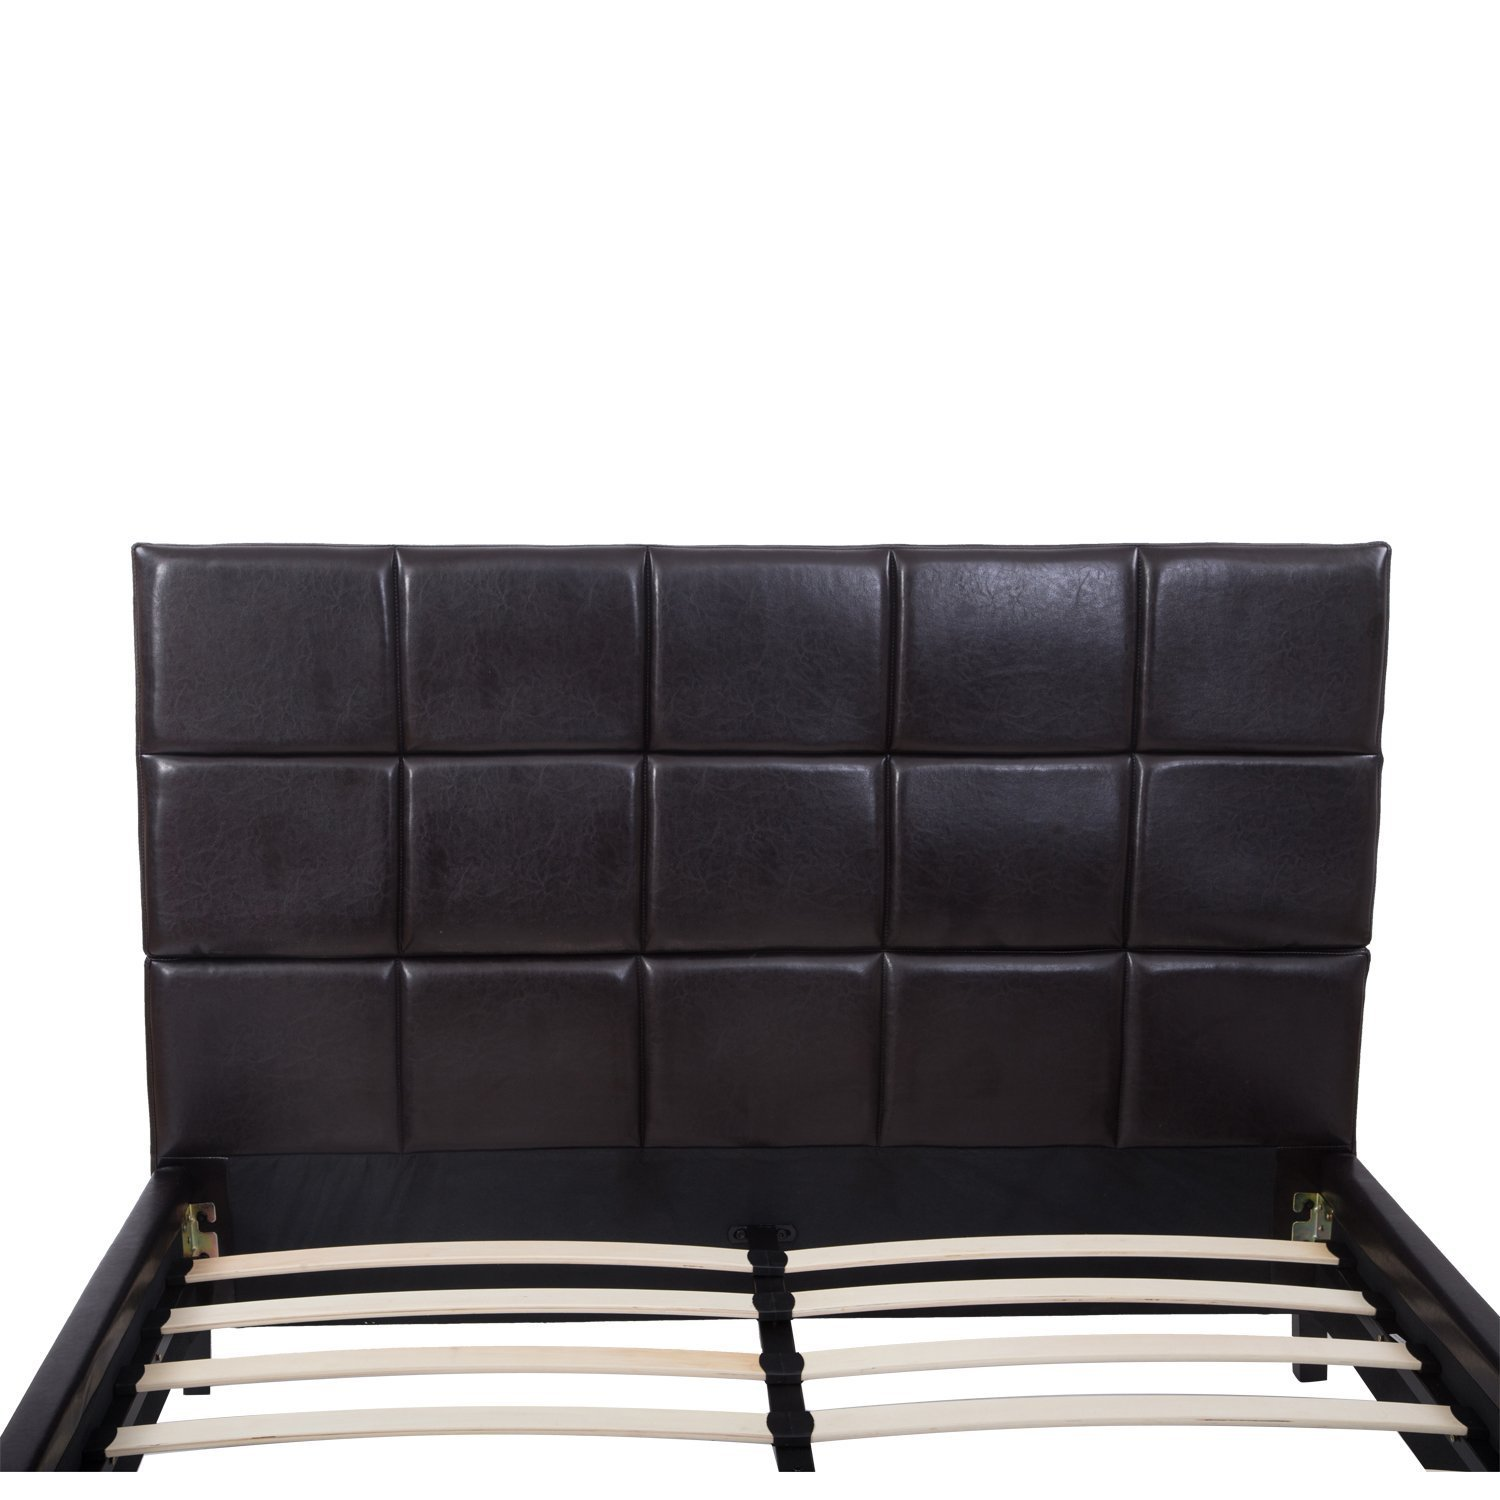 Low Queen Size Bed Part - 23: Amazon.com - HomCom Queen Size Black Faux Leather Low Profile Headboard  With Wood Slat Bed Frame -